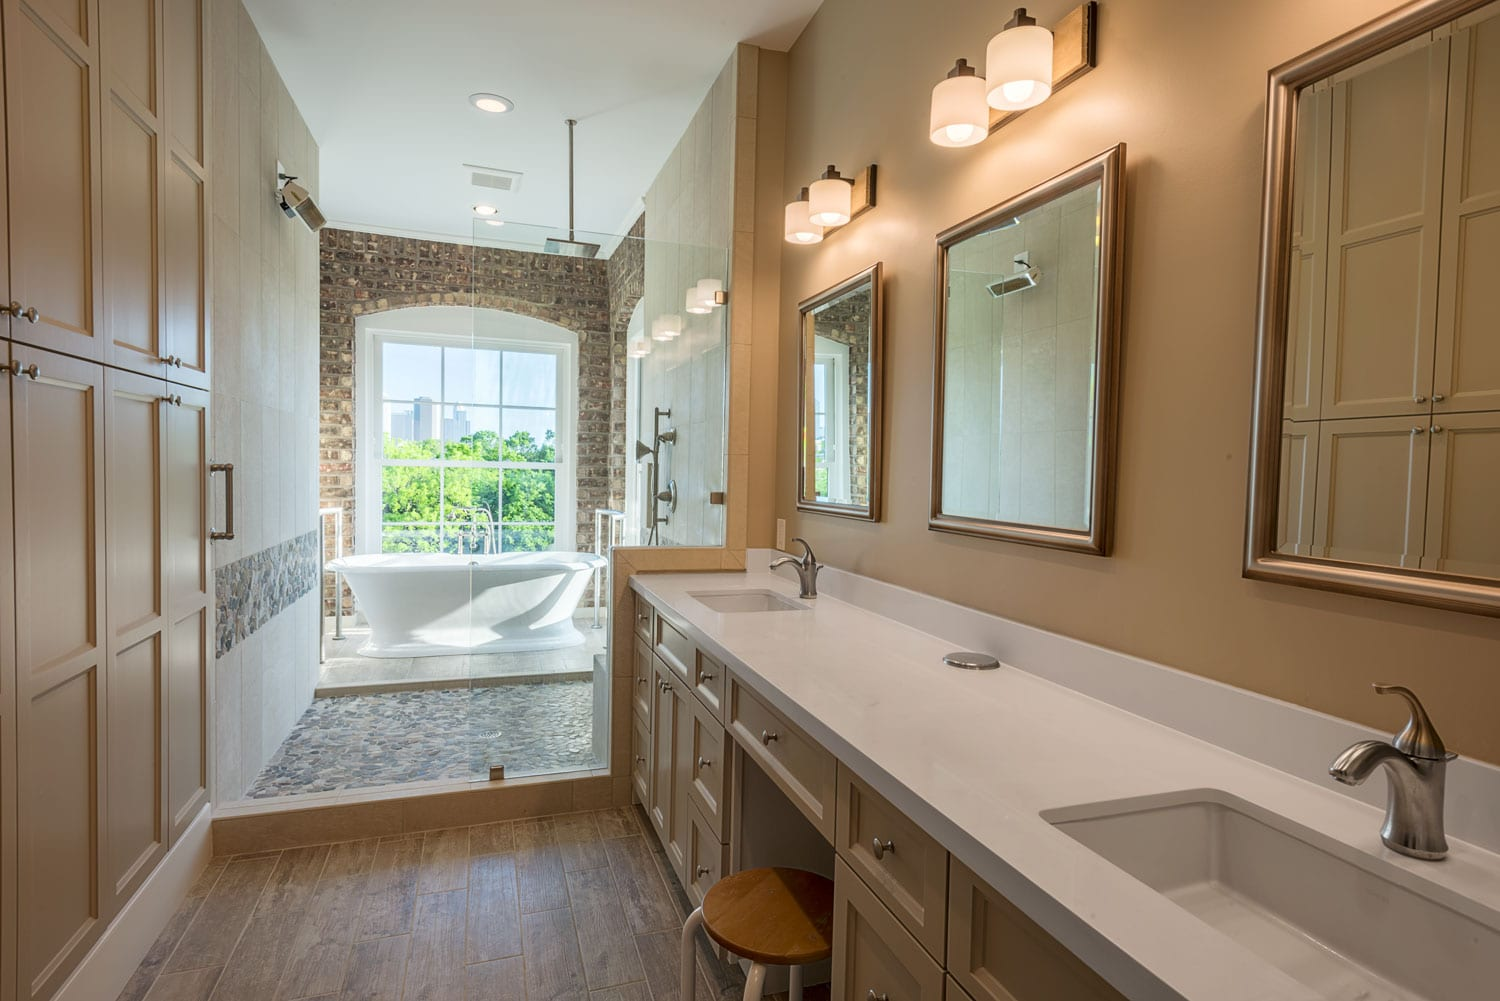 bathroom remodeling expertise - All Star Construction Inc